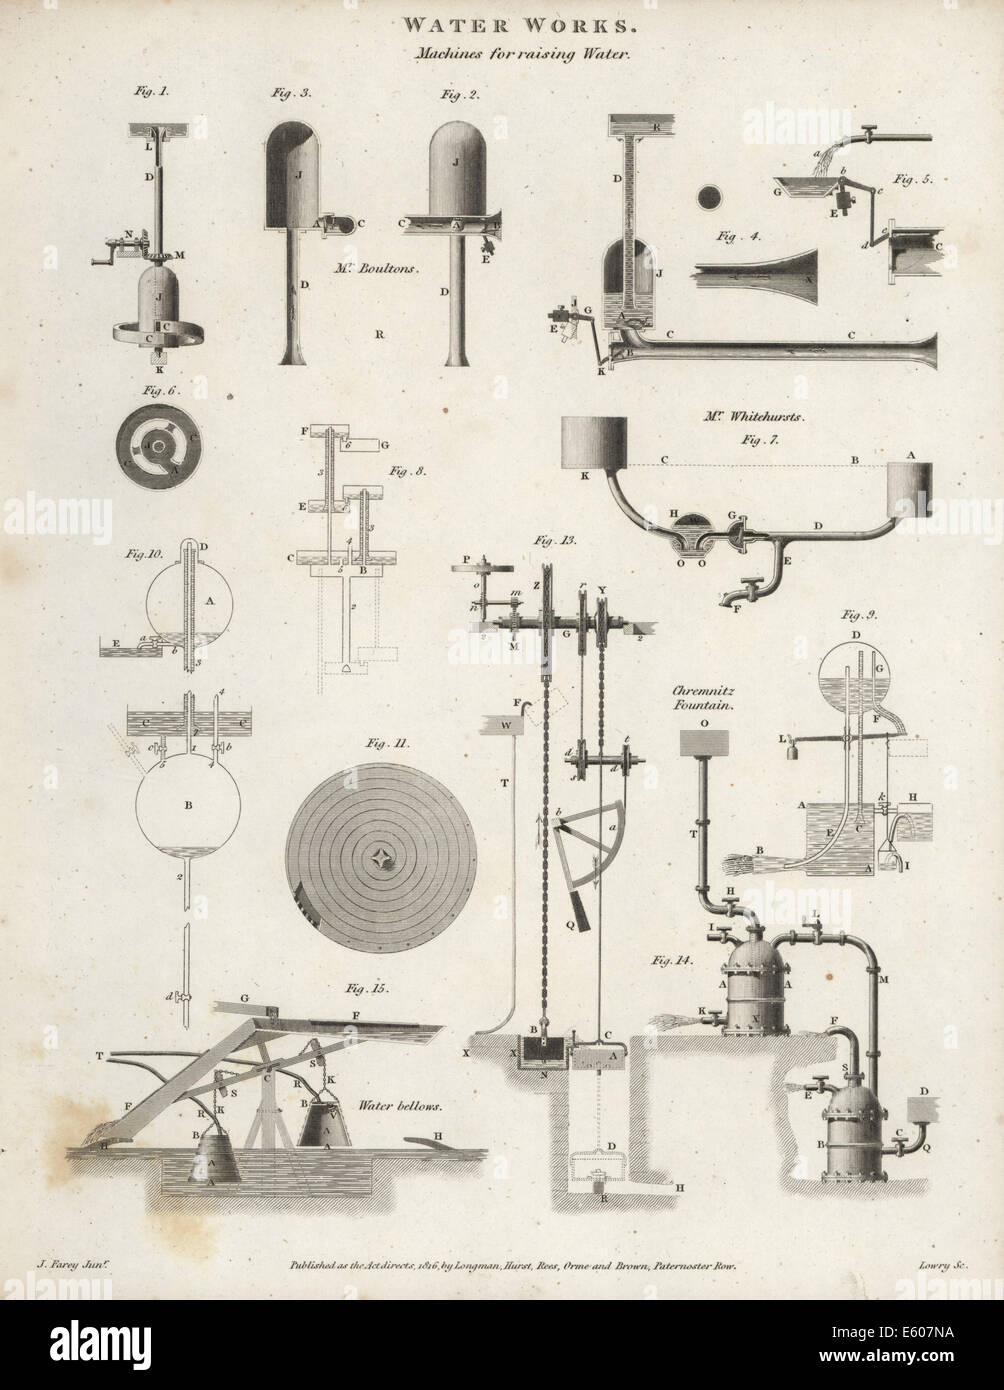 Water works, water bellows, Chremnitz fountain and Whitehurst's device. - Stock Image